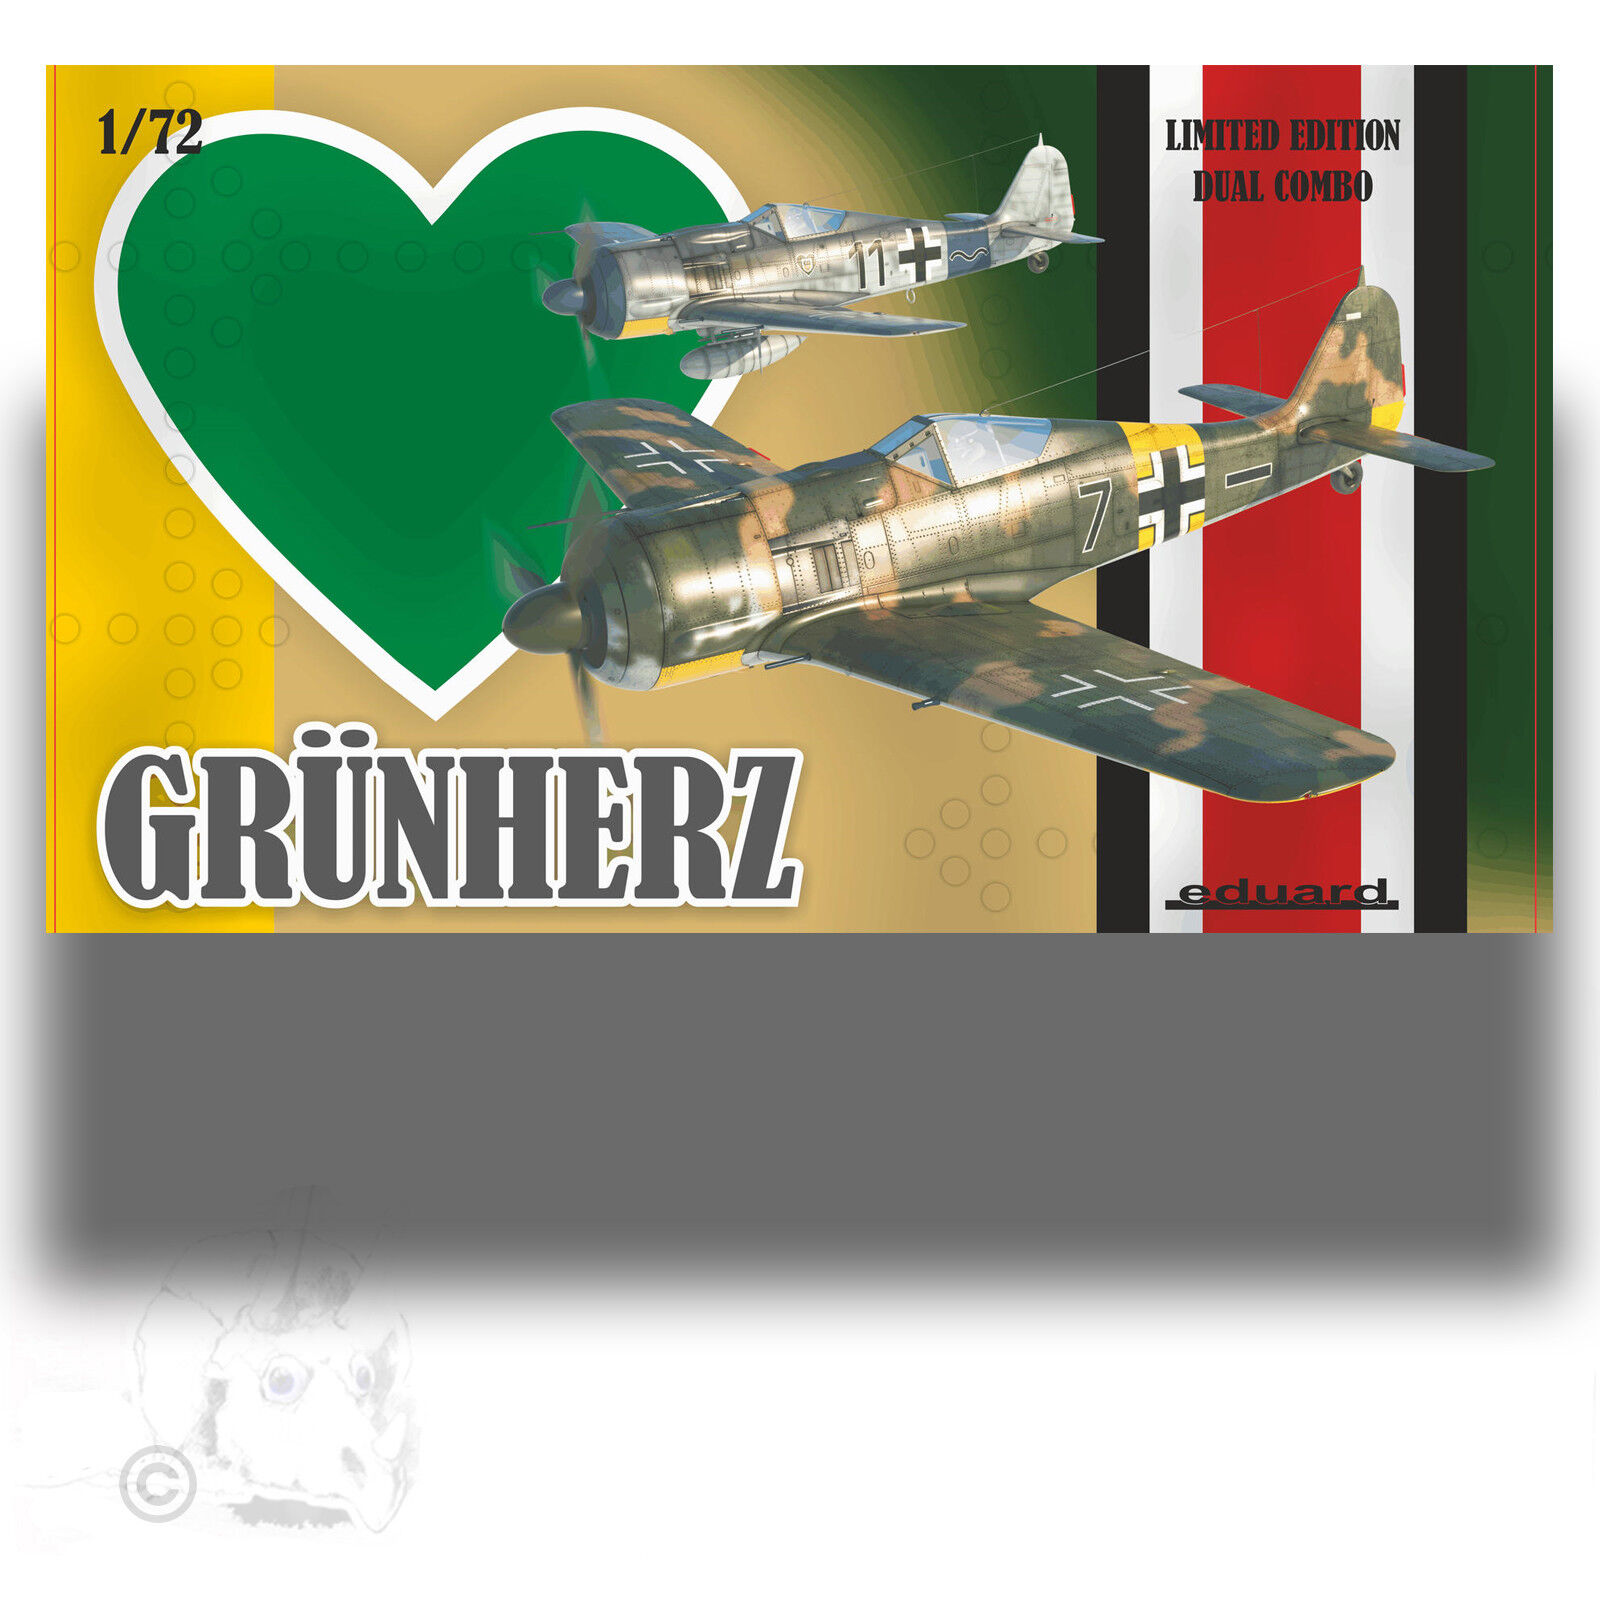 EDUARD 1 72 GRUNHERZ DUAL COMBO FW-190'S LIMITED EDITION KIT 2122